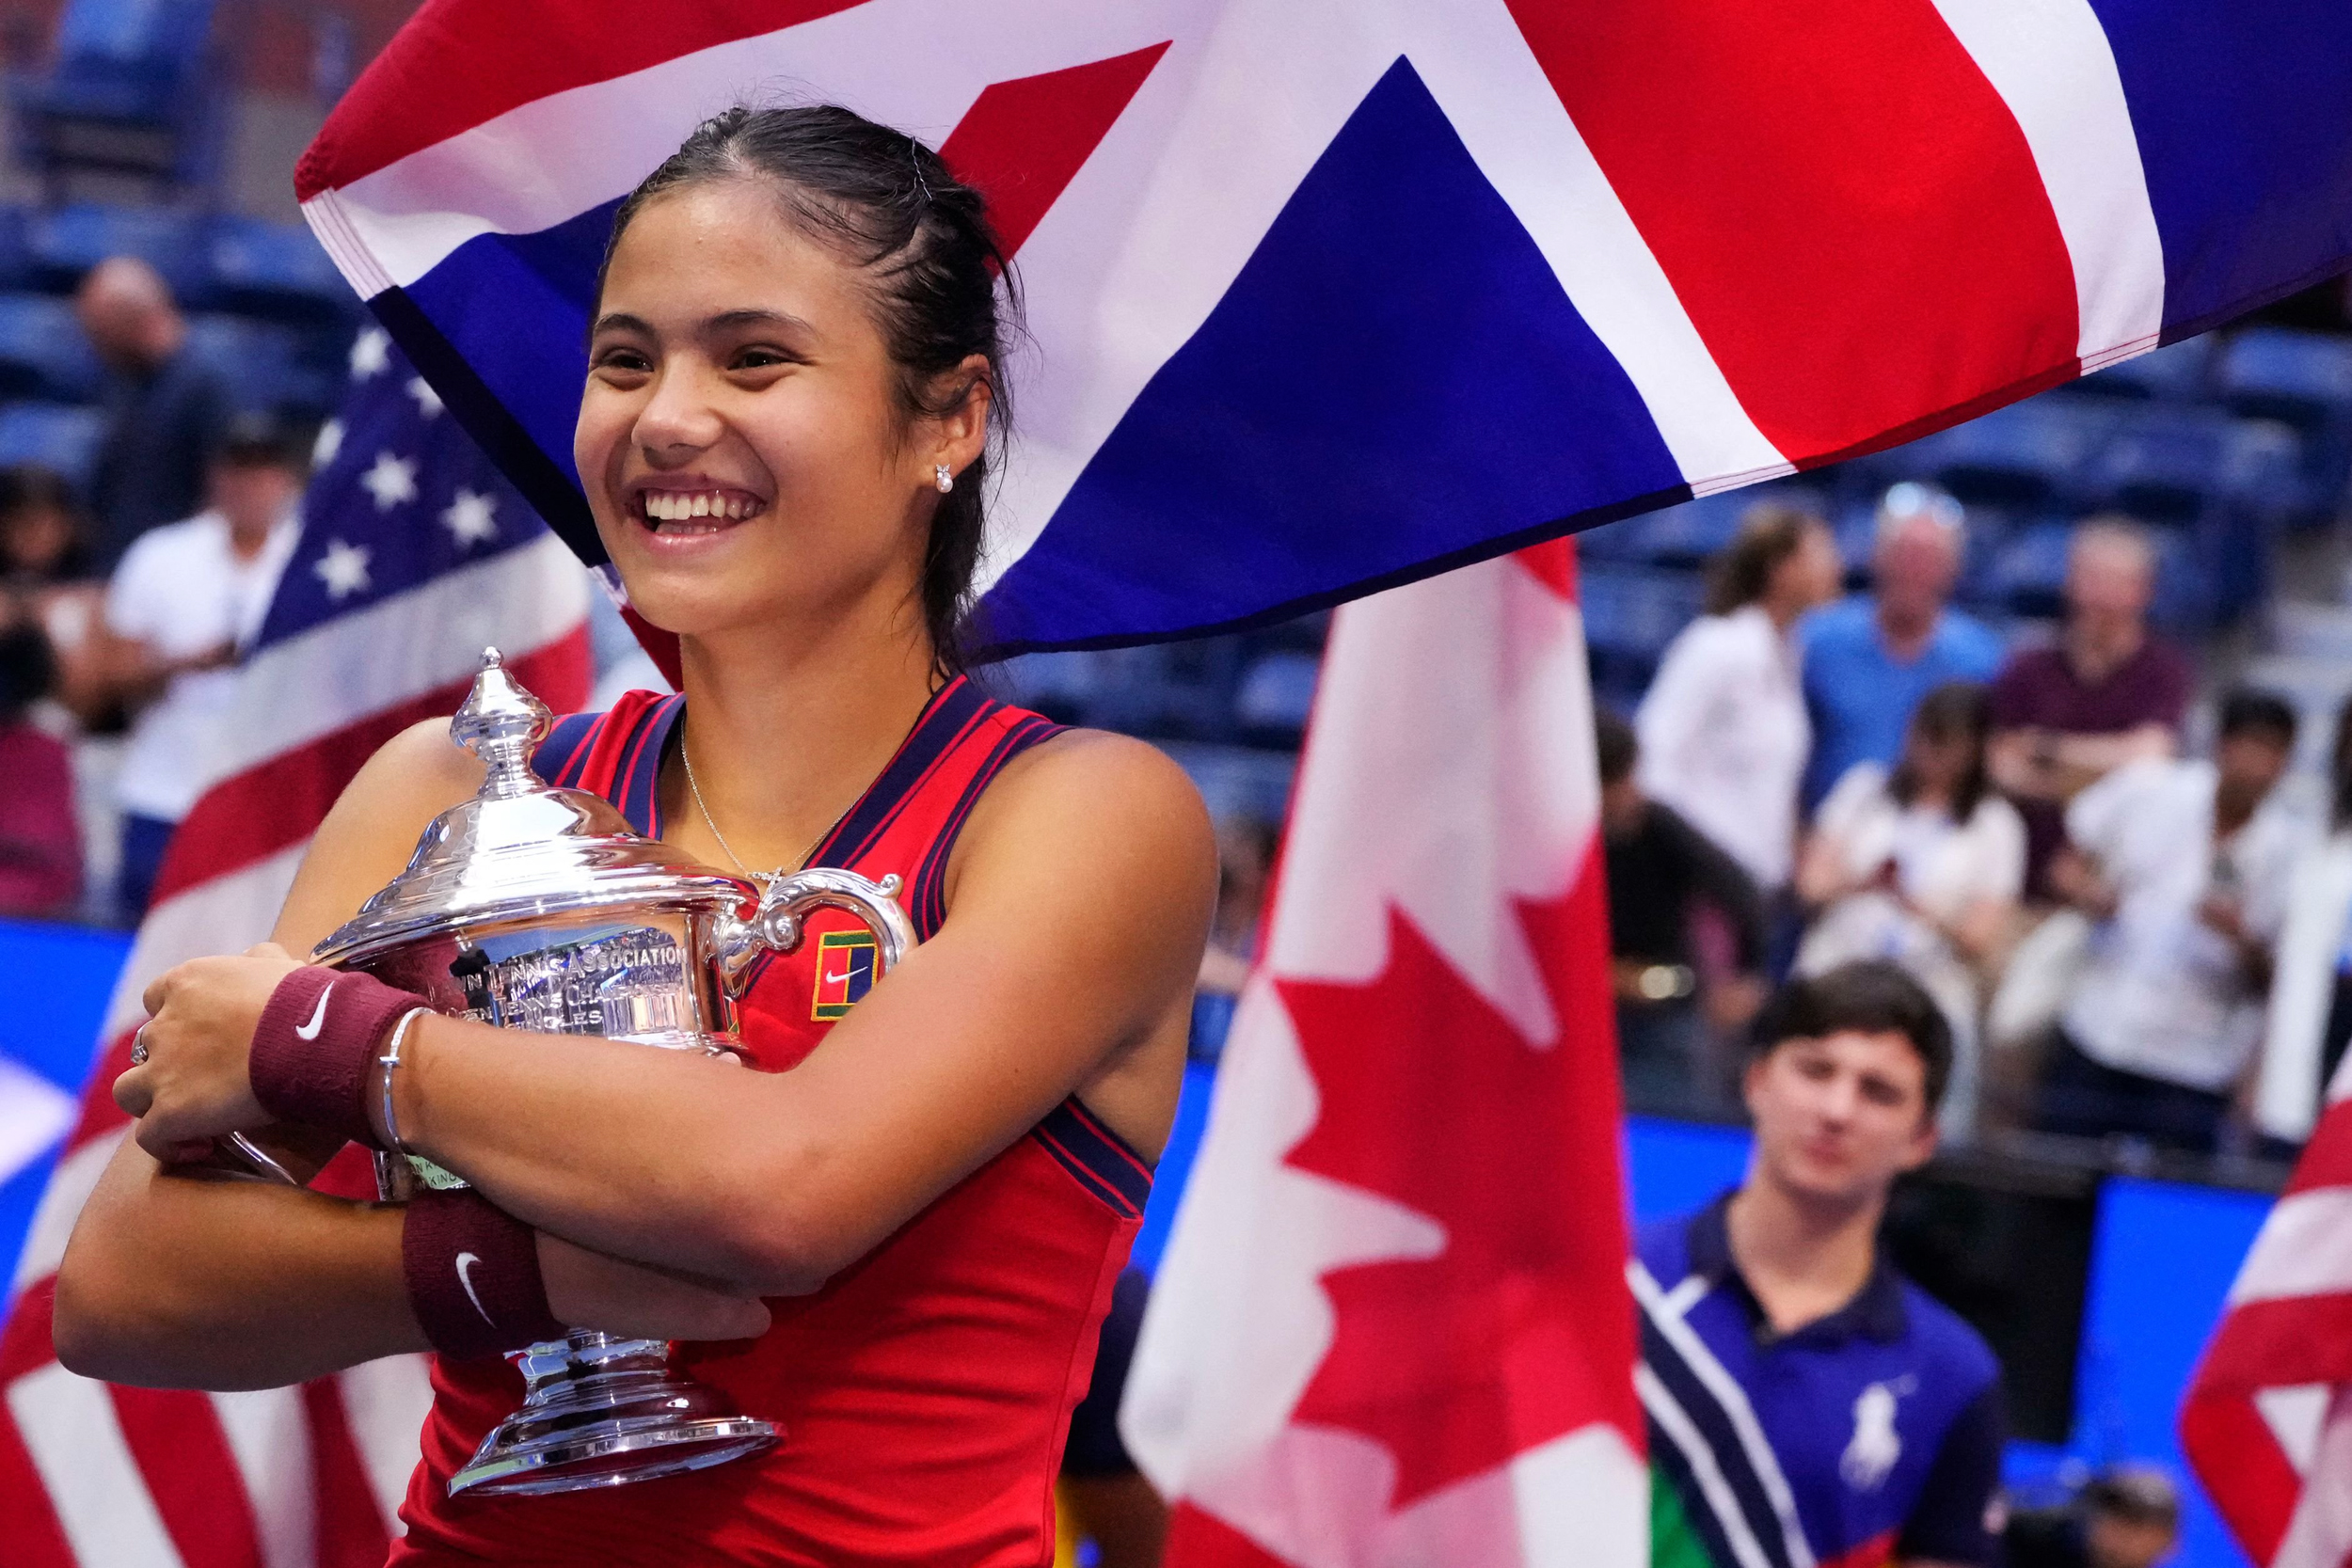 British reaction to Raducanu's win becomes politicized over immigration and inclusion